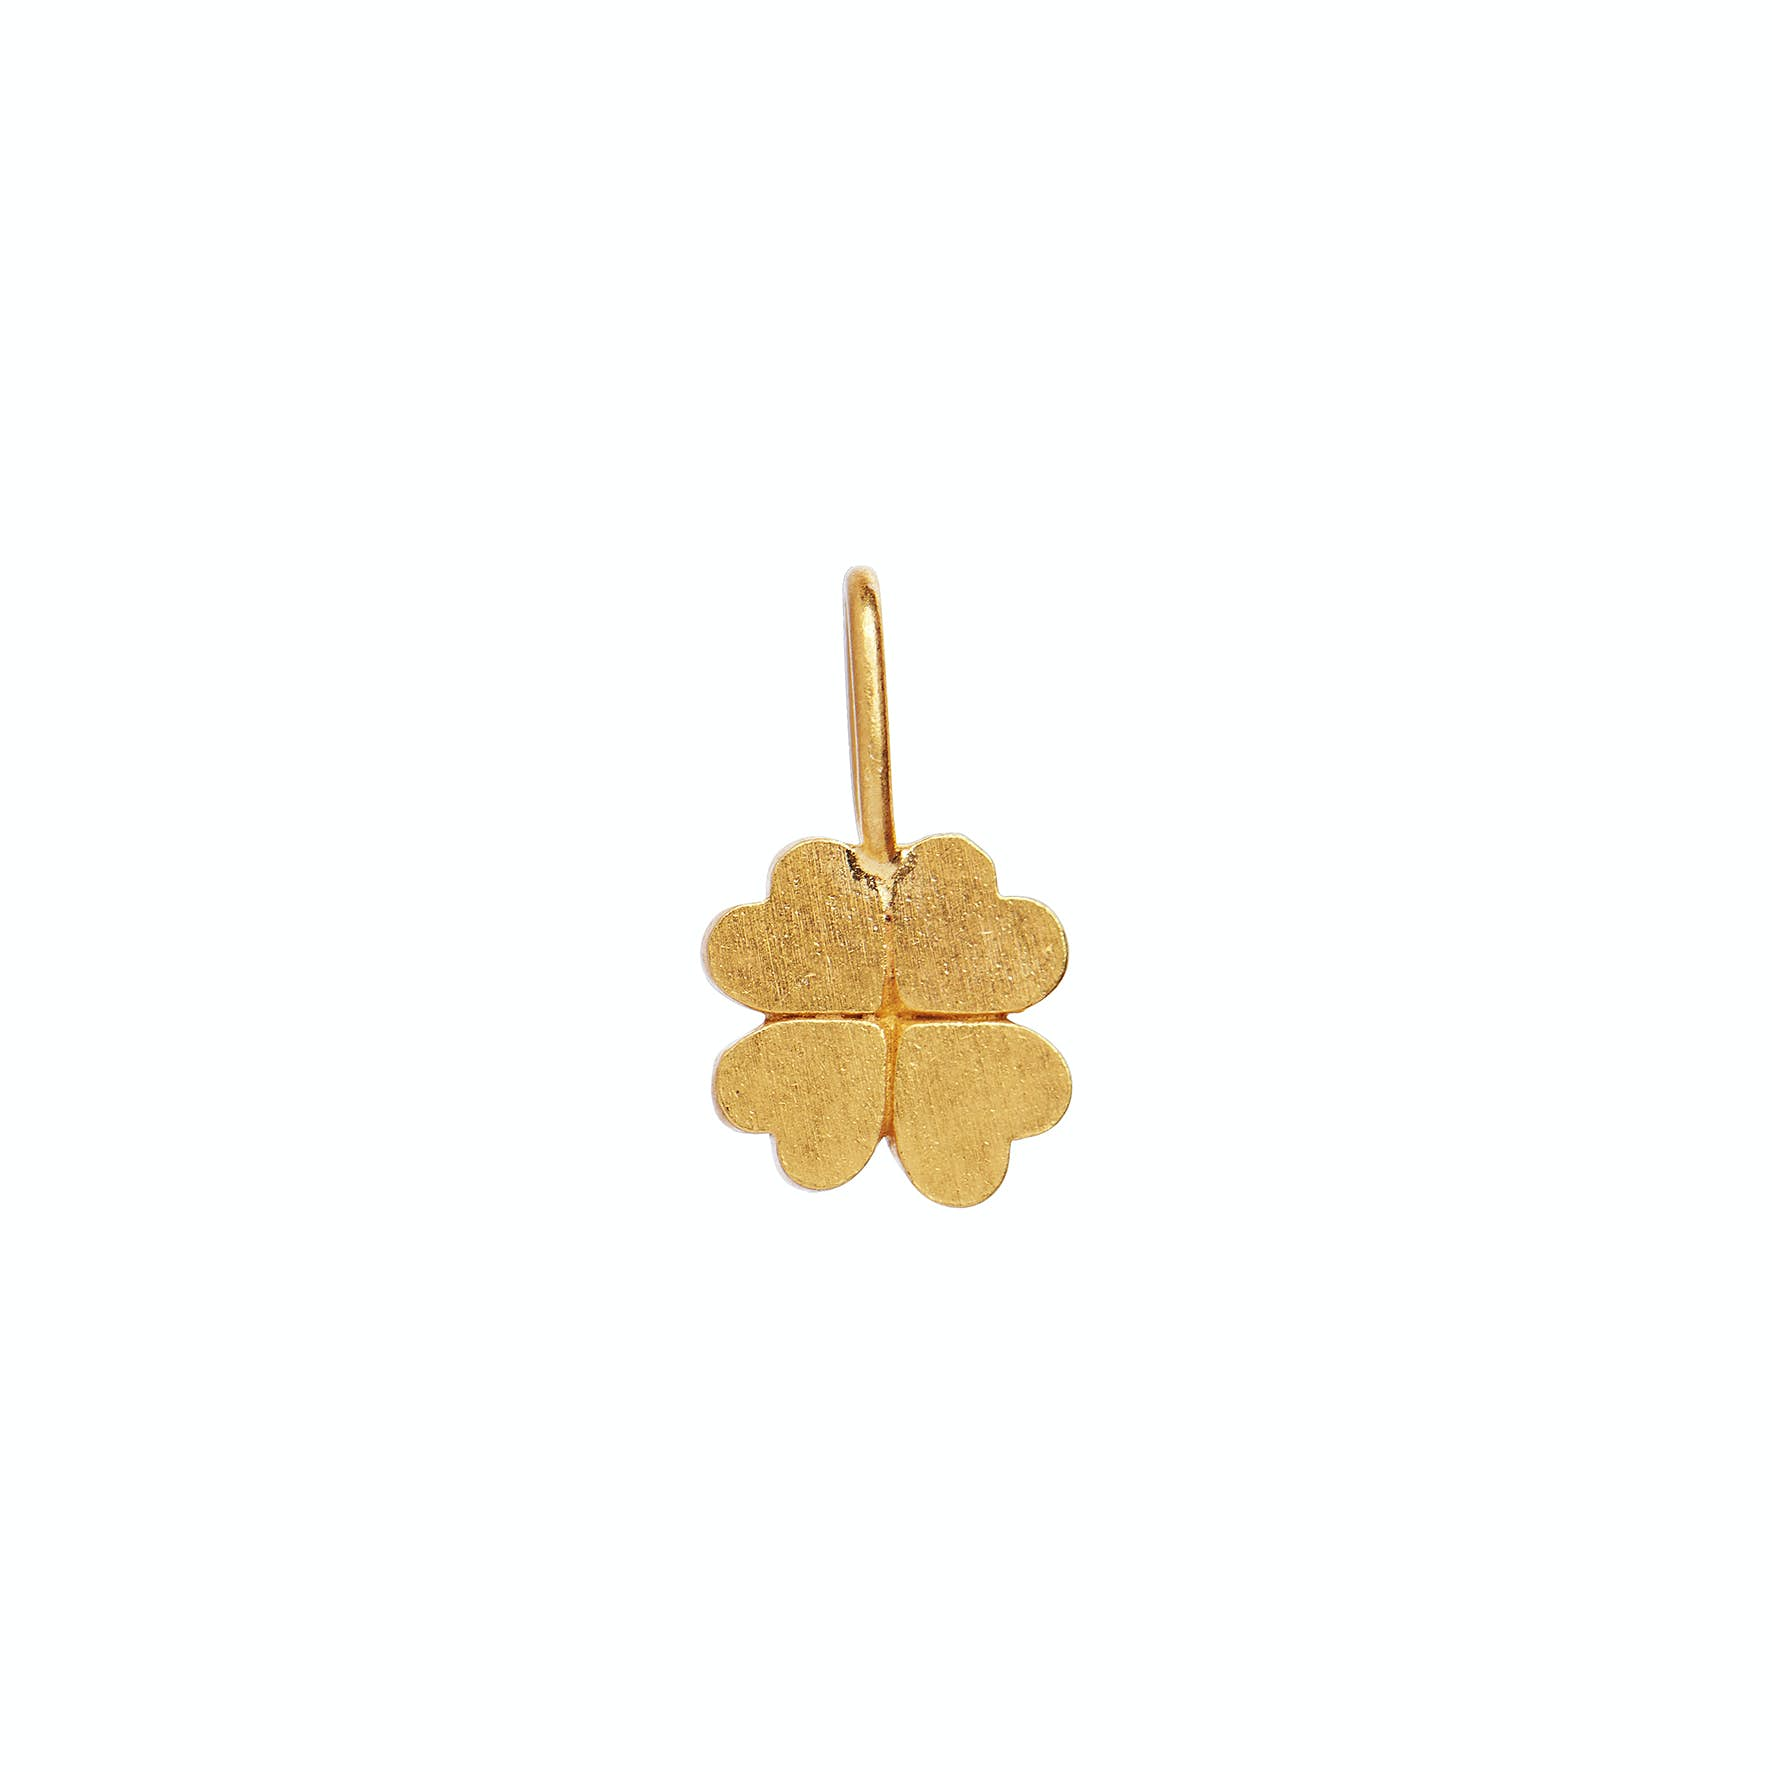 Petit Clover Charm from STINE A Jewelry in Goldplated-Silver Sterling 925